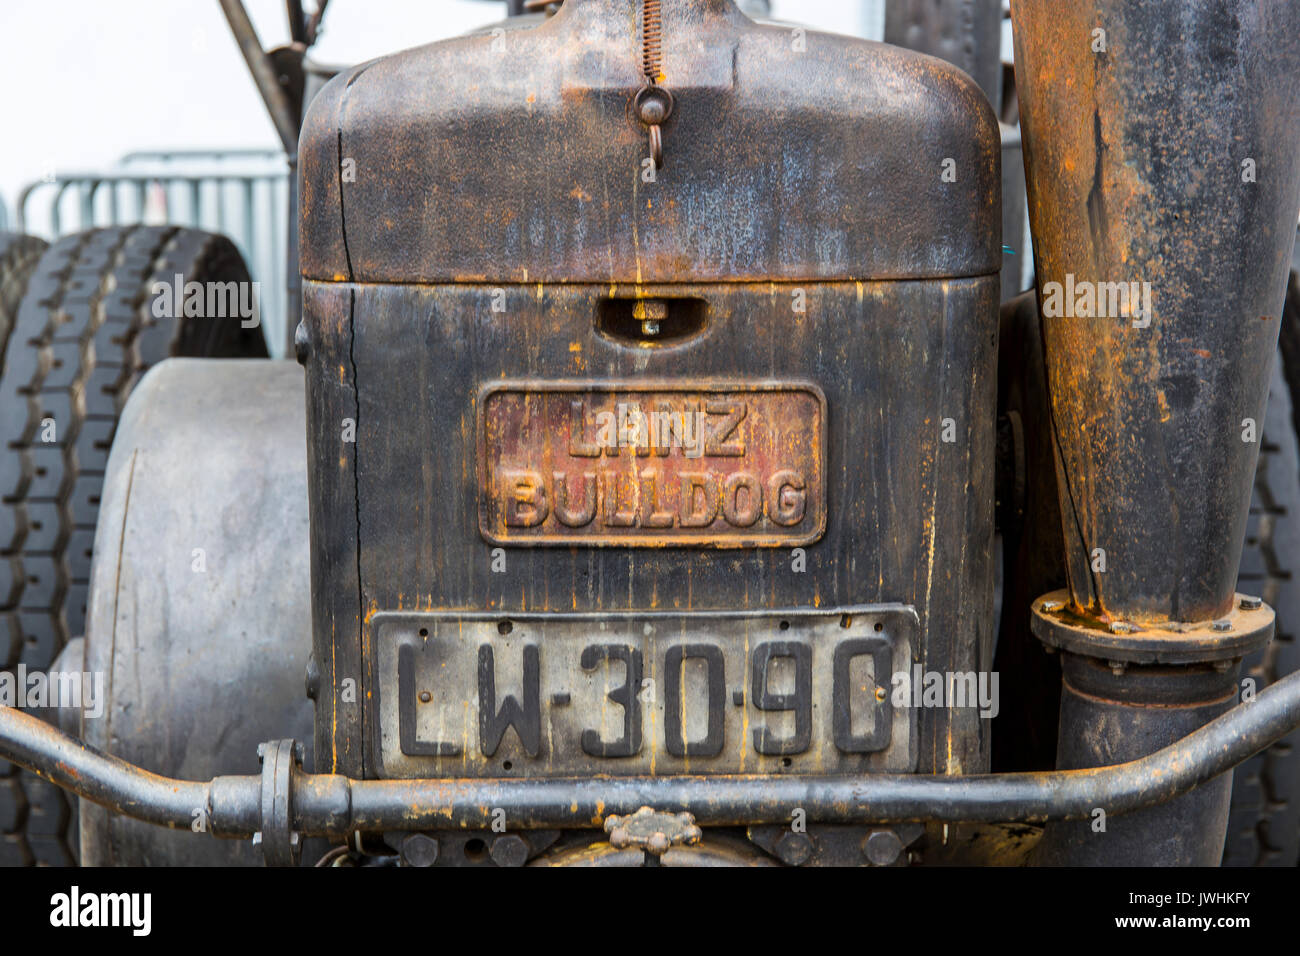 Bielsko-Biala, Poland. 12th Aug, 2017. International automotive trade fairs - MotoShow Bielsko-Biala. Front of an old Lanz Bulldog german tractor. Credit: Lukasz Obermann/Alamy Live News - Stock Image